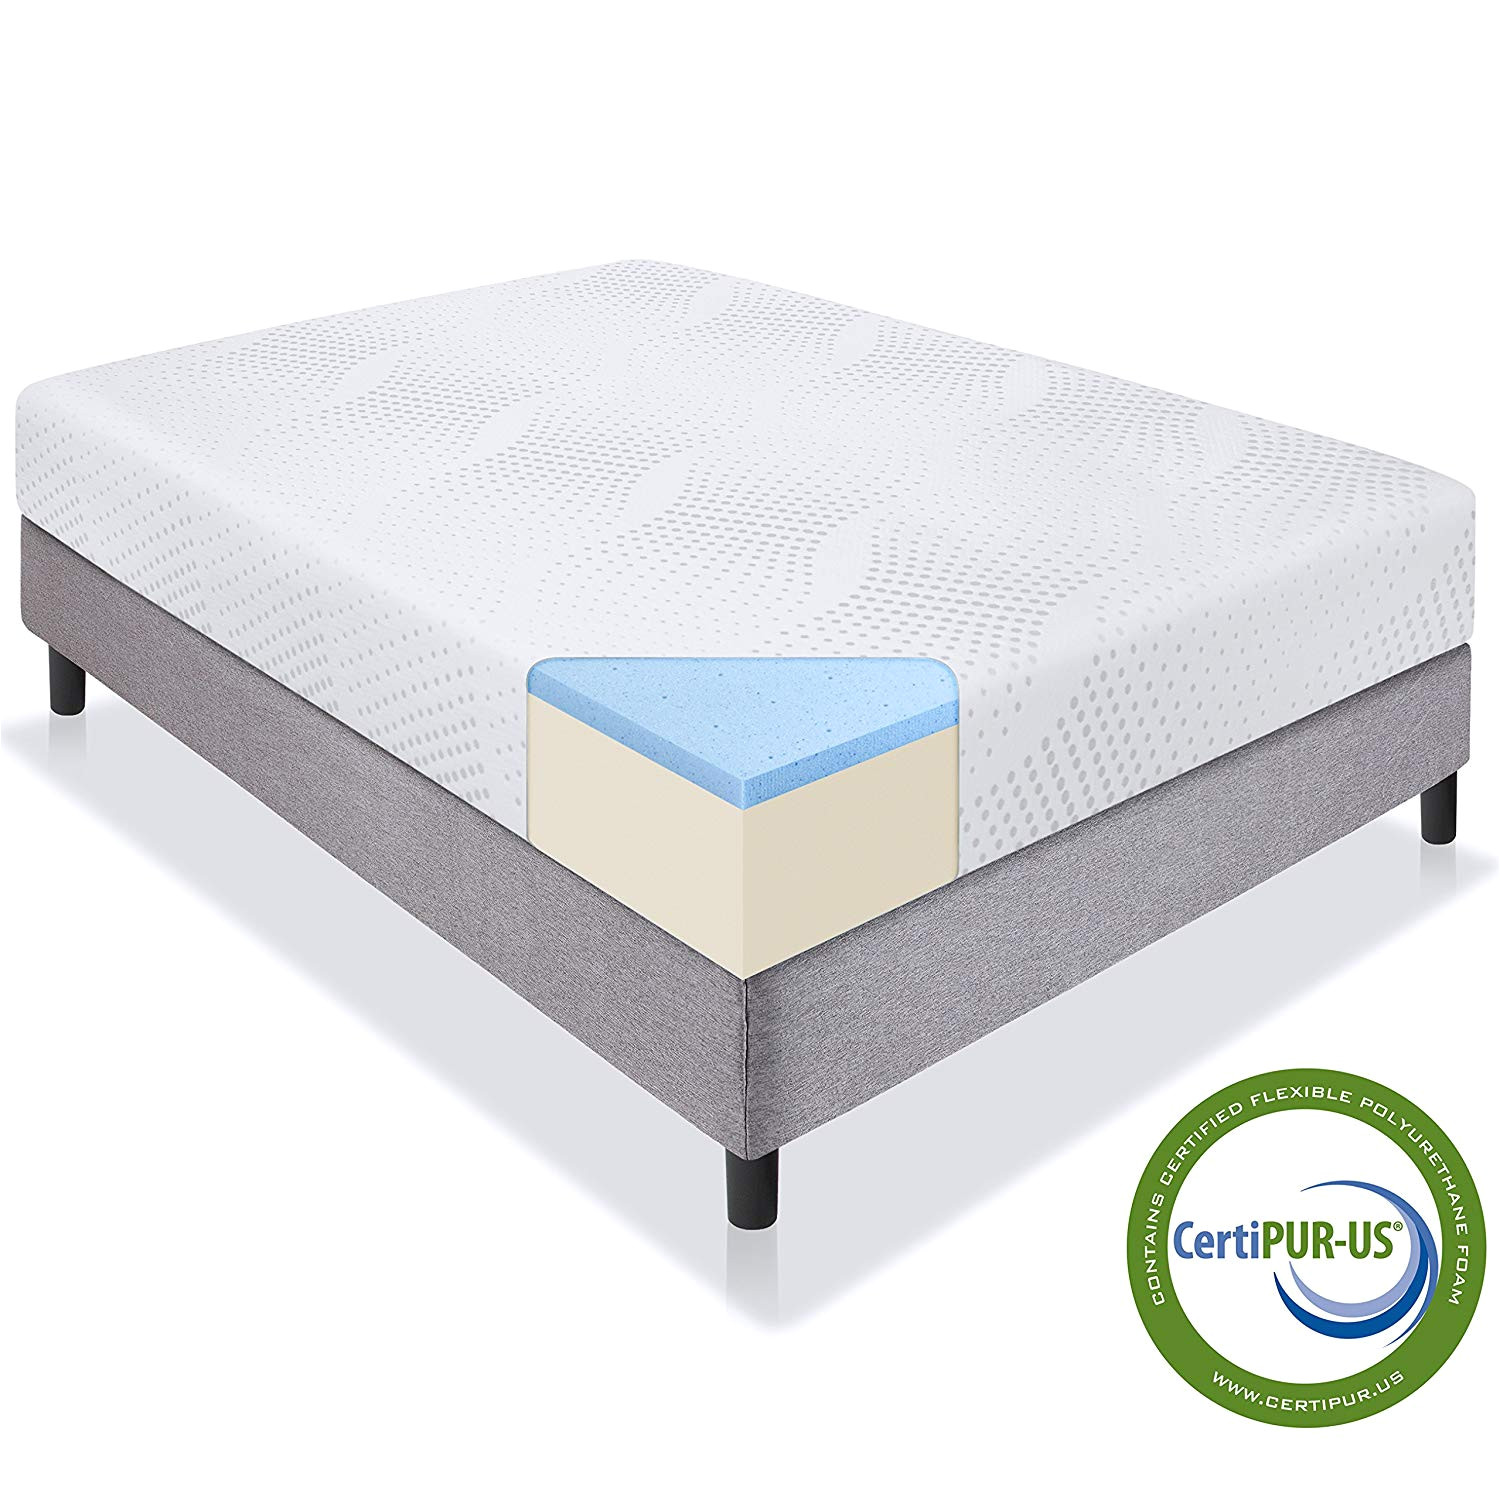 amazon com best choice products 10in full size dual layered gel memory foam mattress w certipur us certified foam home kitchen